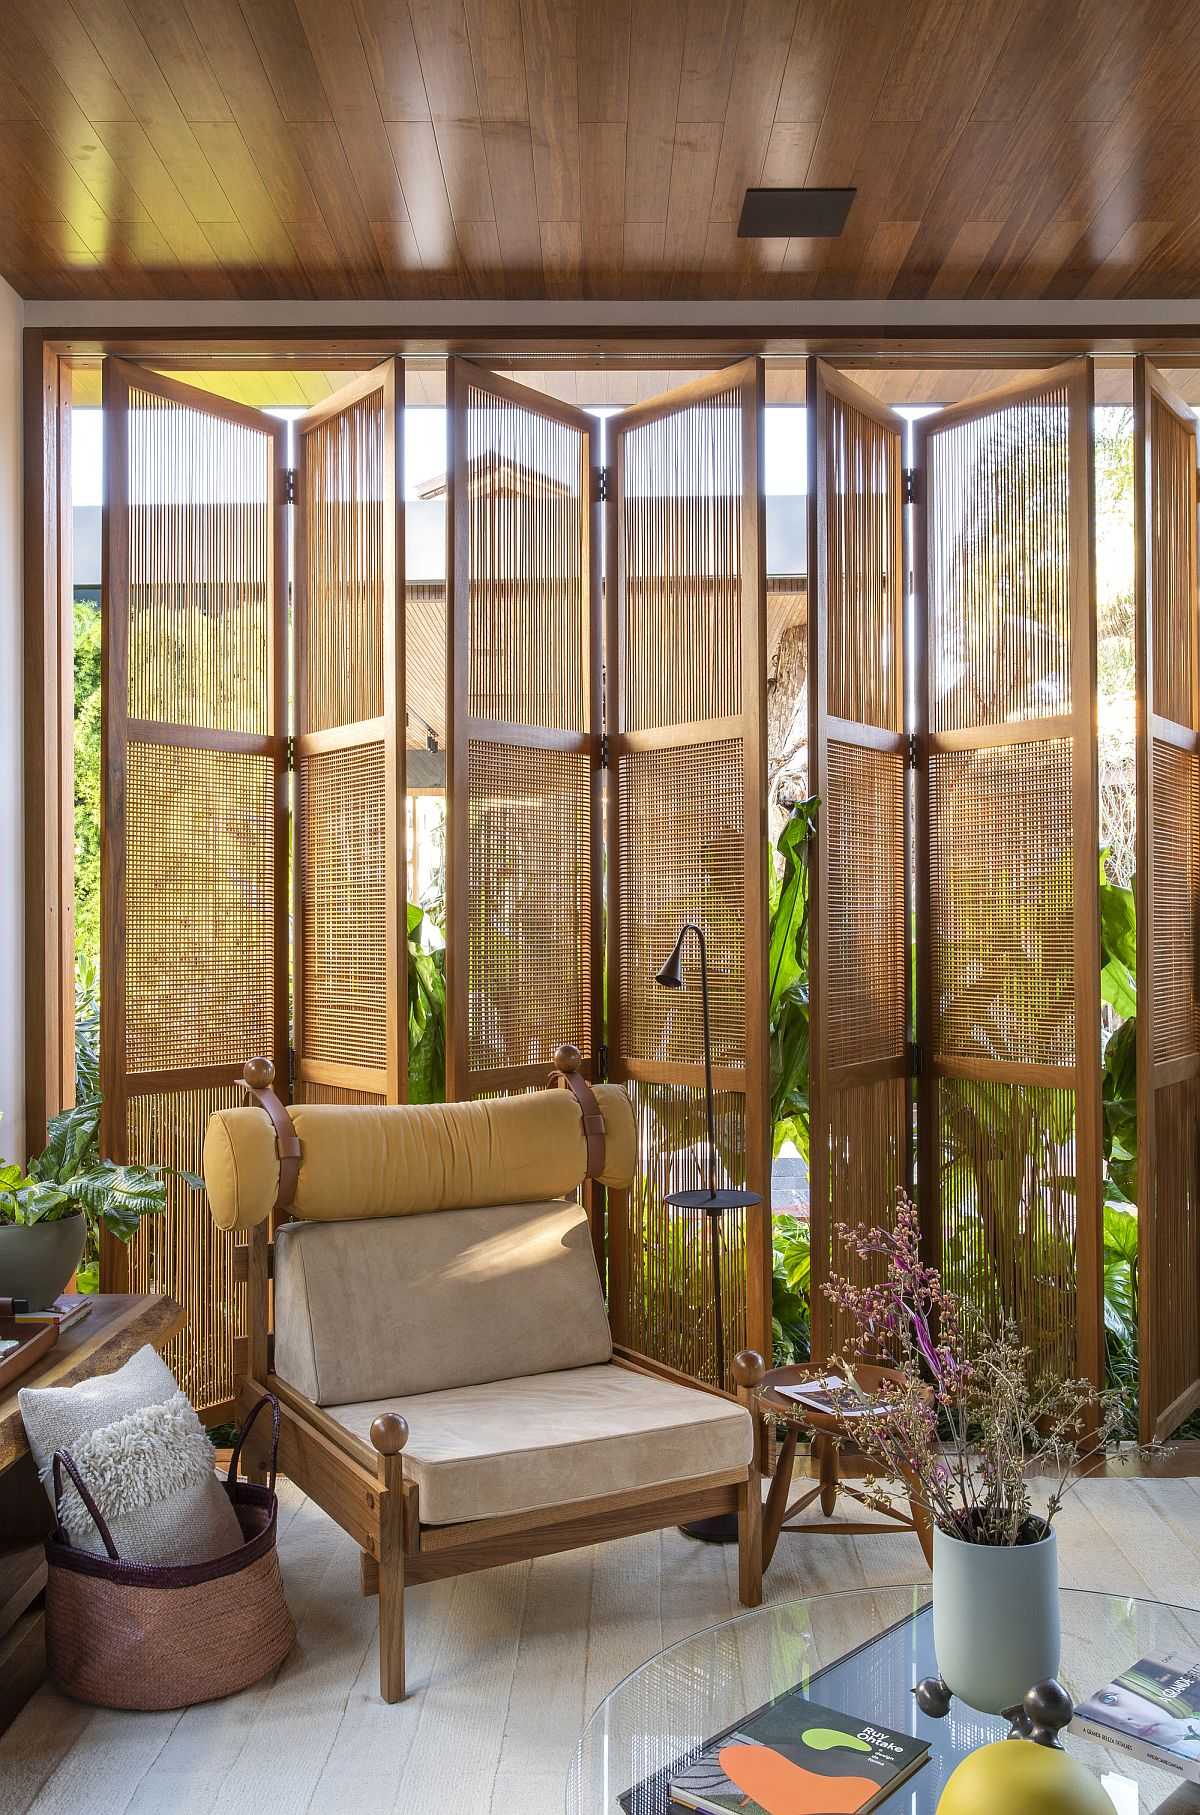 Woodsy doors allow the homeowners to switch between privacy and unabated views